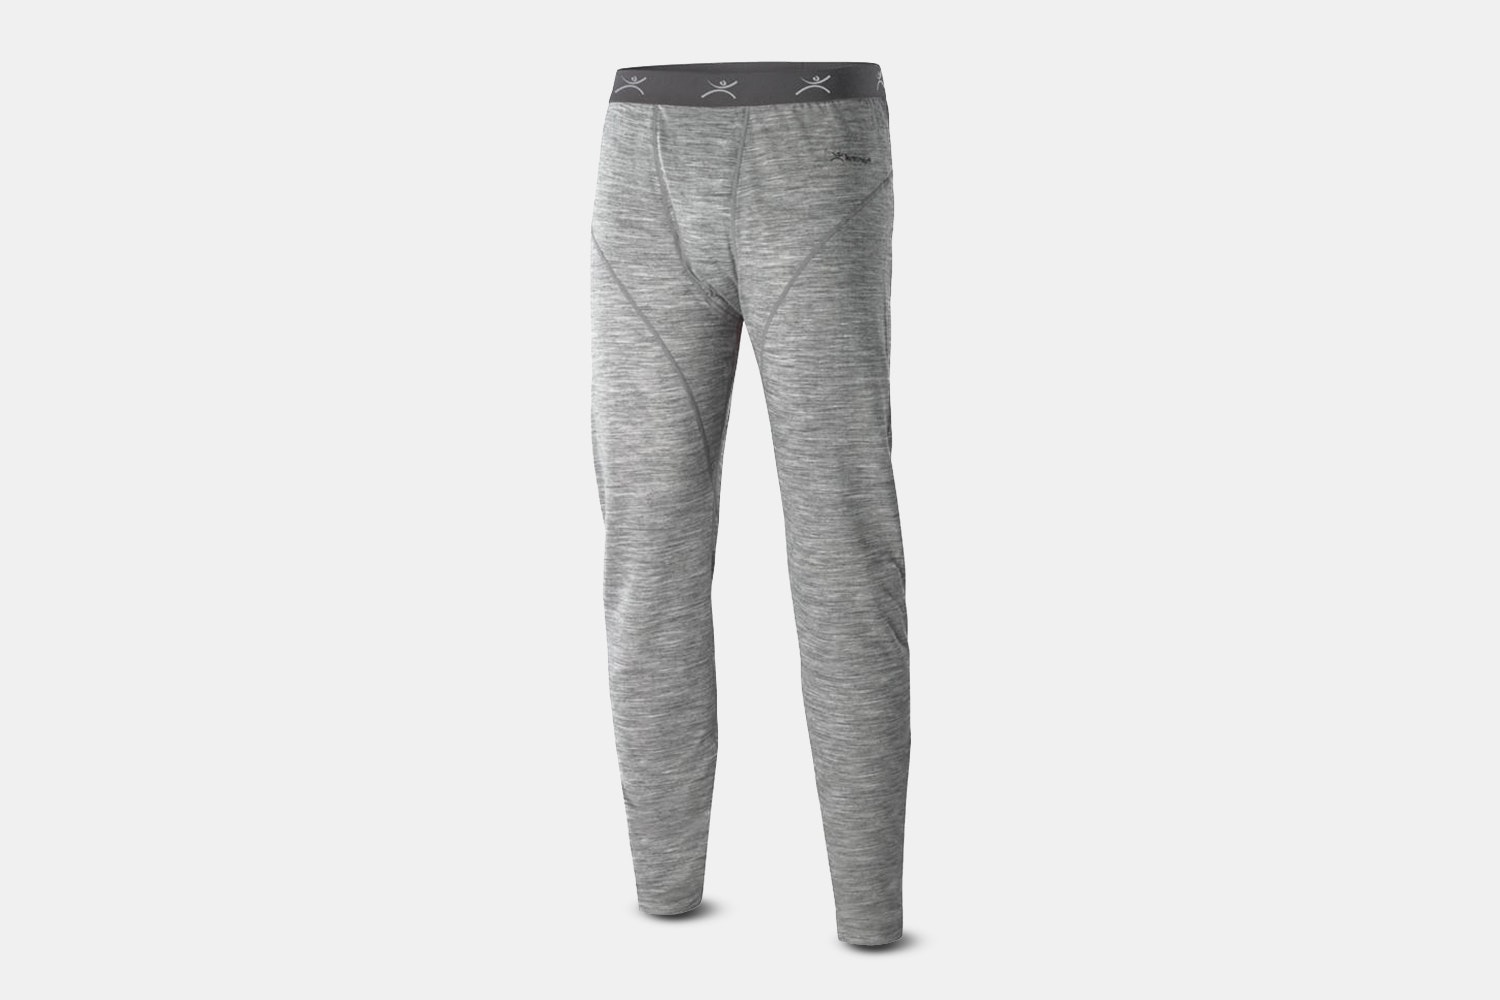 Men's – Light Heather Gray